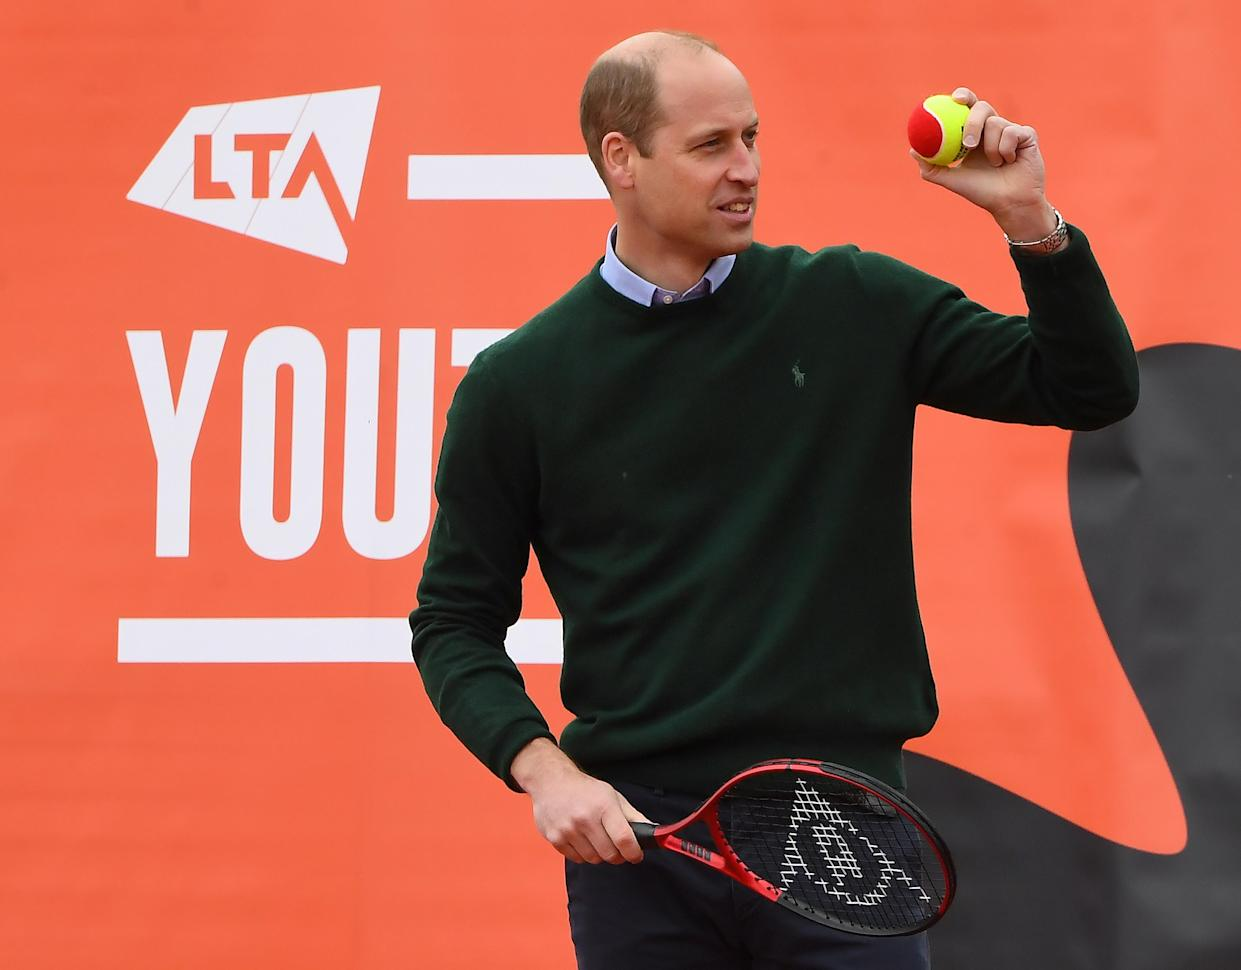 EDINBURGH, SCOTLAND - MAY 27: Prince William, Duke of Cambridge plays tennis games with local schoolchildren as he takes part in the Lawn Tennis Association's (LTA) Youth programme, at Craiglockhart Tennis Centre on May 26, 2021 in Edinburgh, Scotland. (Photo by Andy Buchanan - WPA Pool/Getty Images)